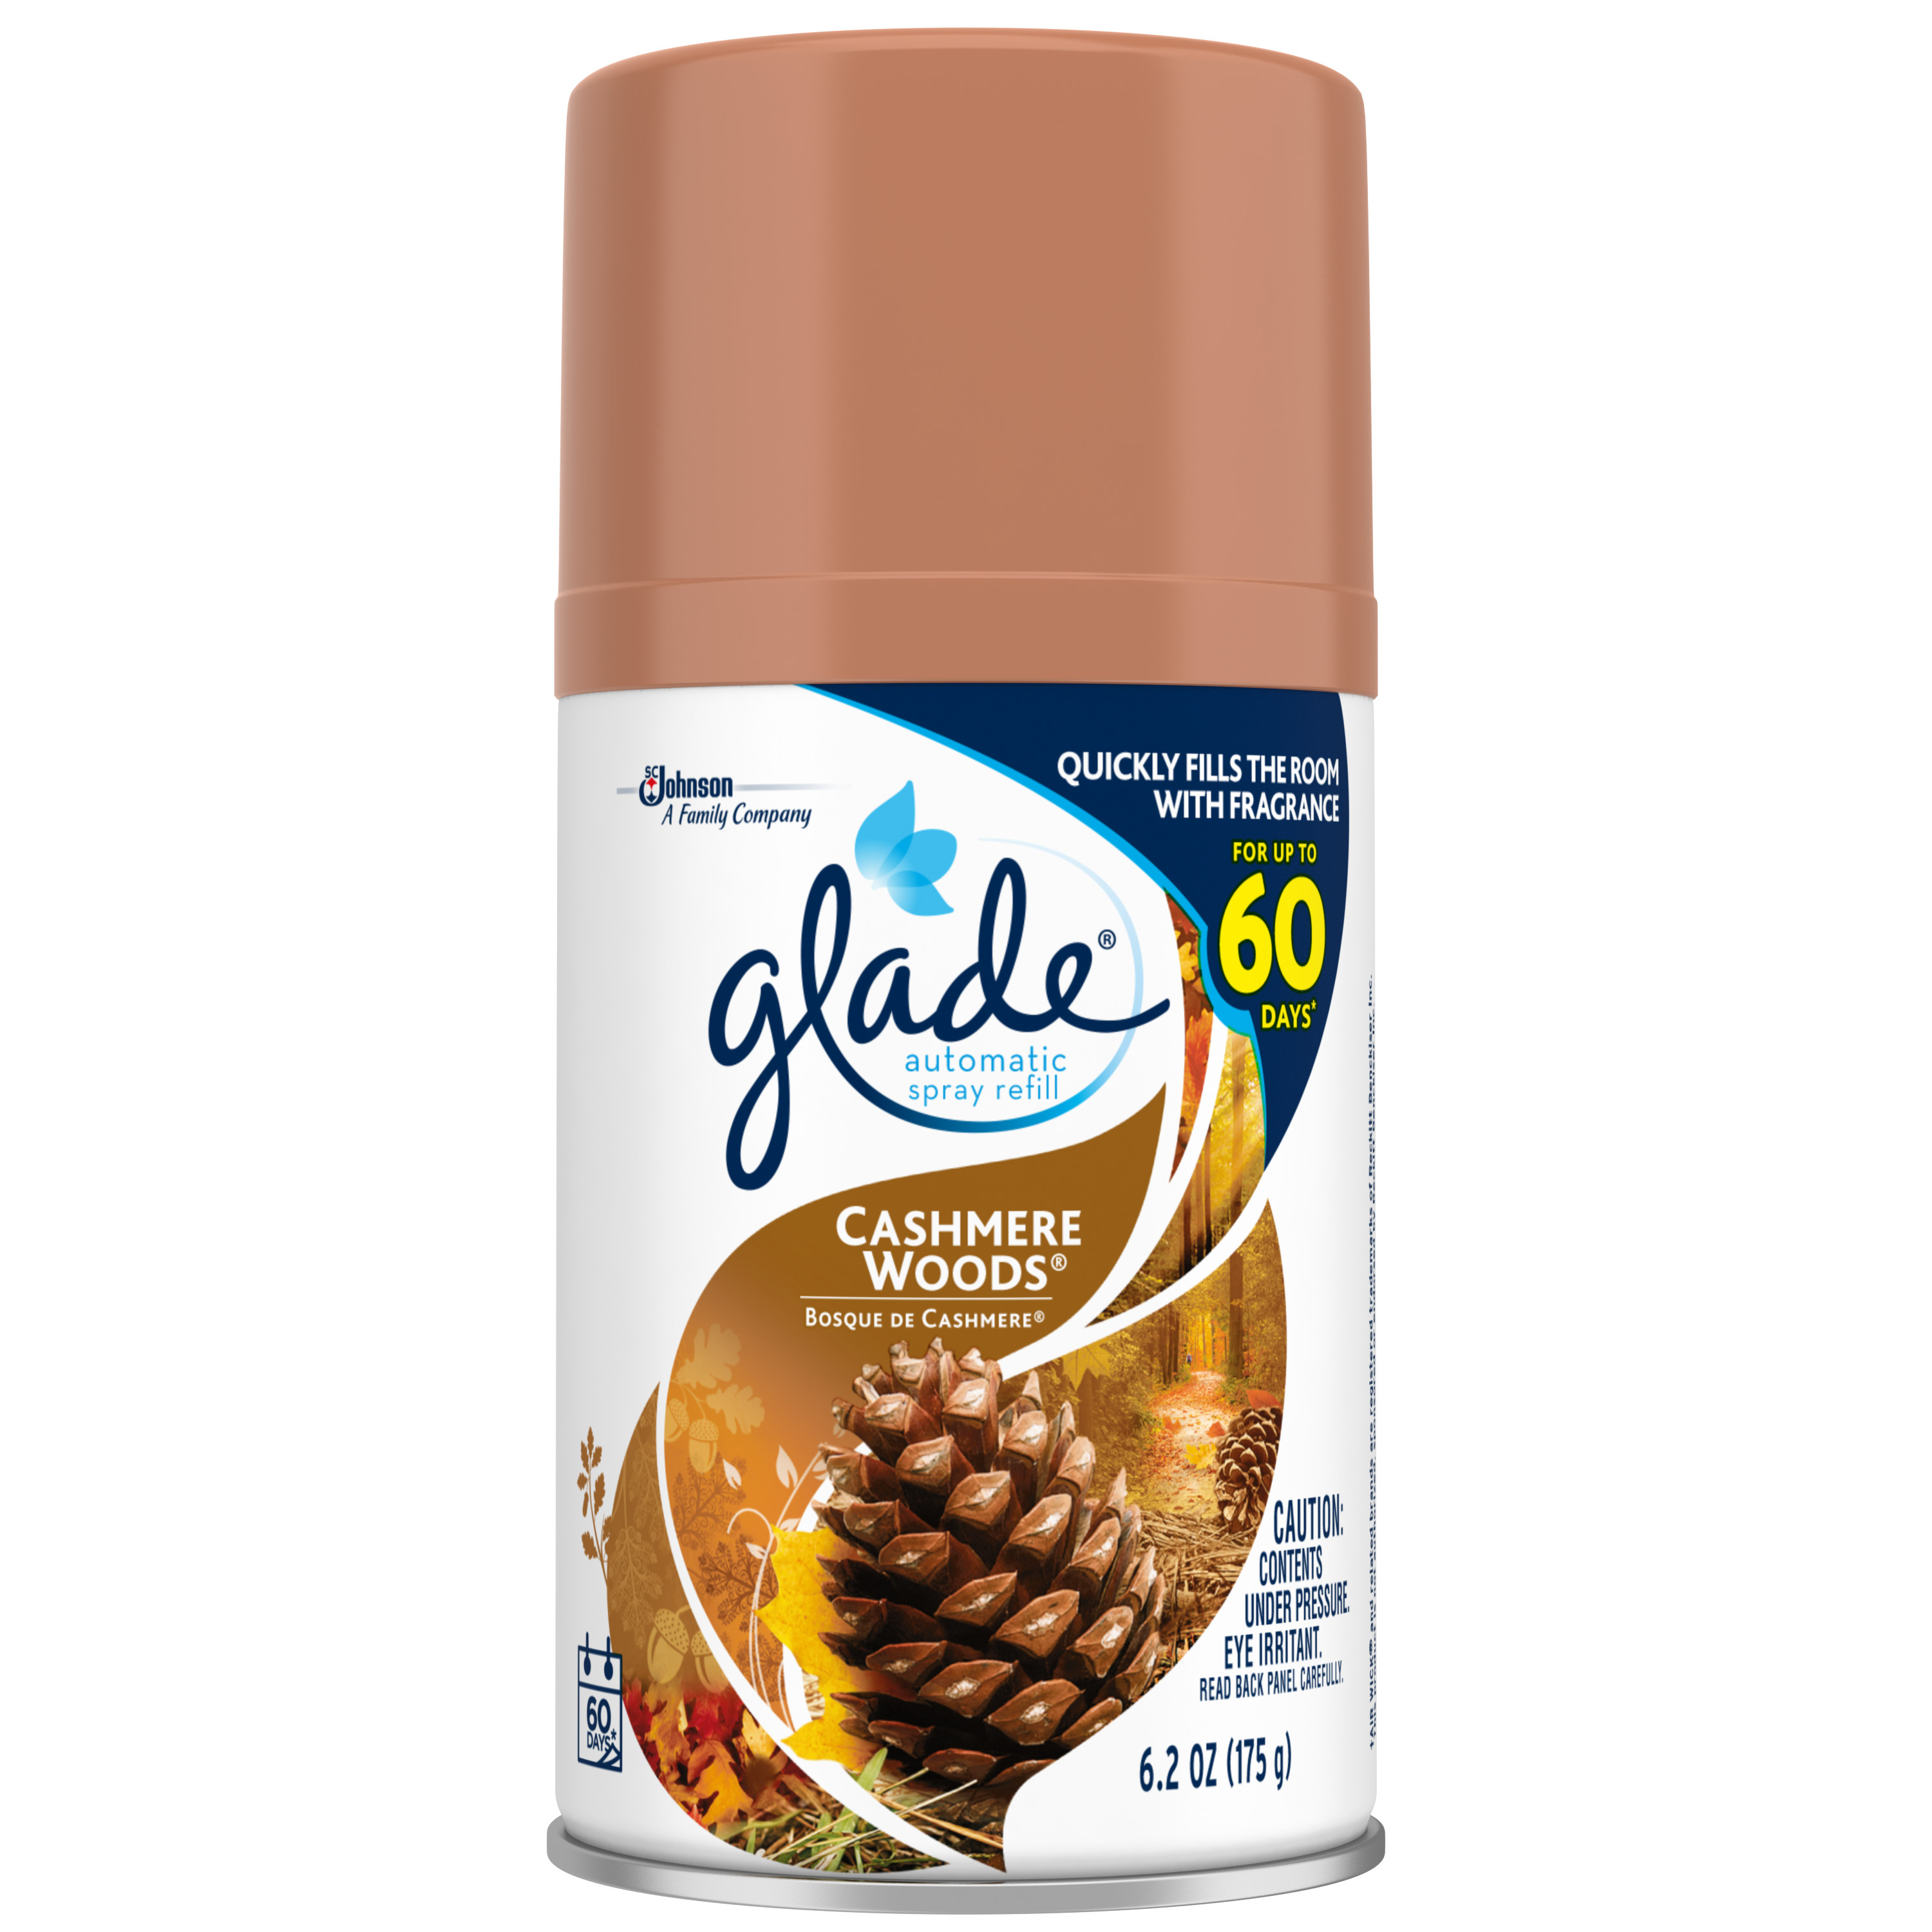 Glade Automatic Spray, Cashmere Woods, 6.2 oz.